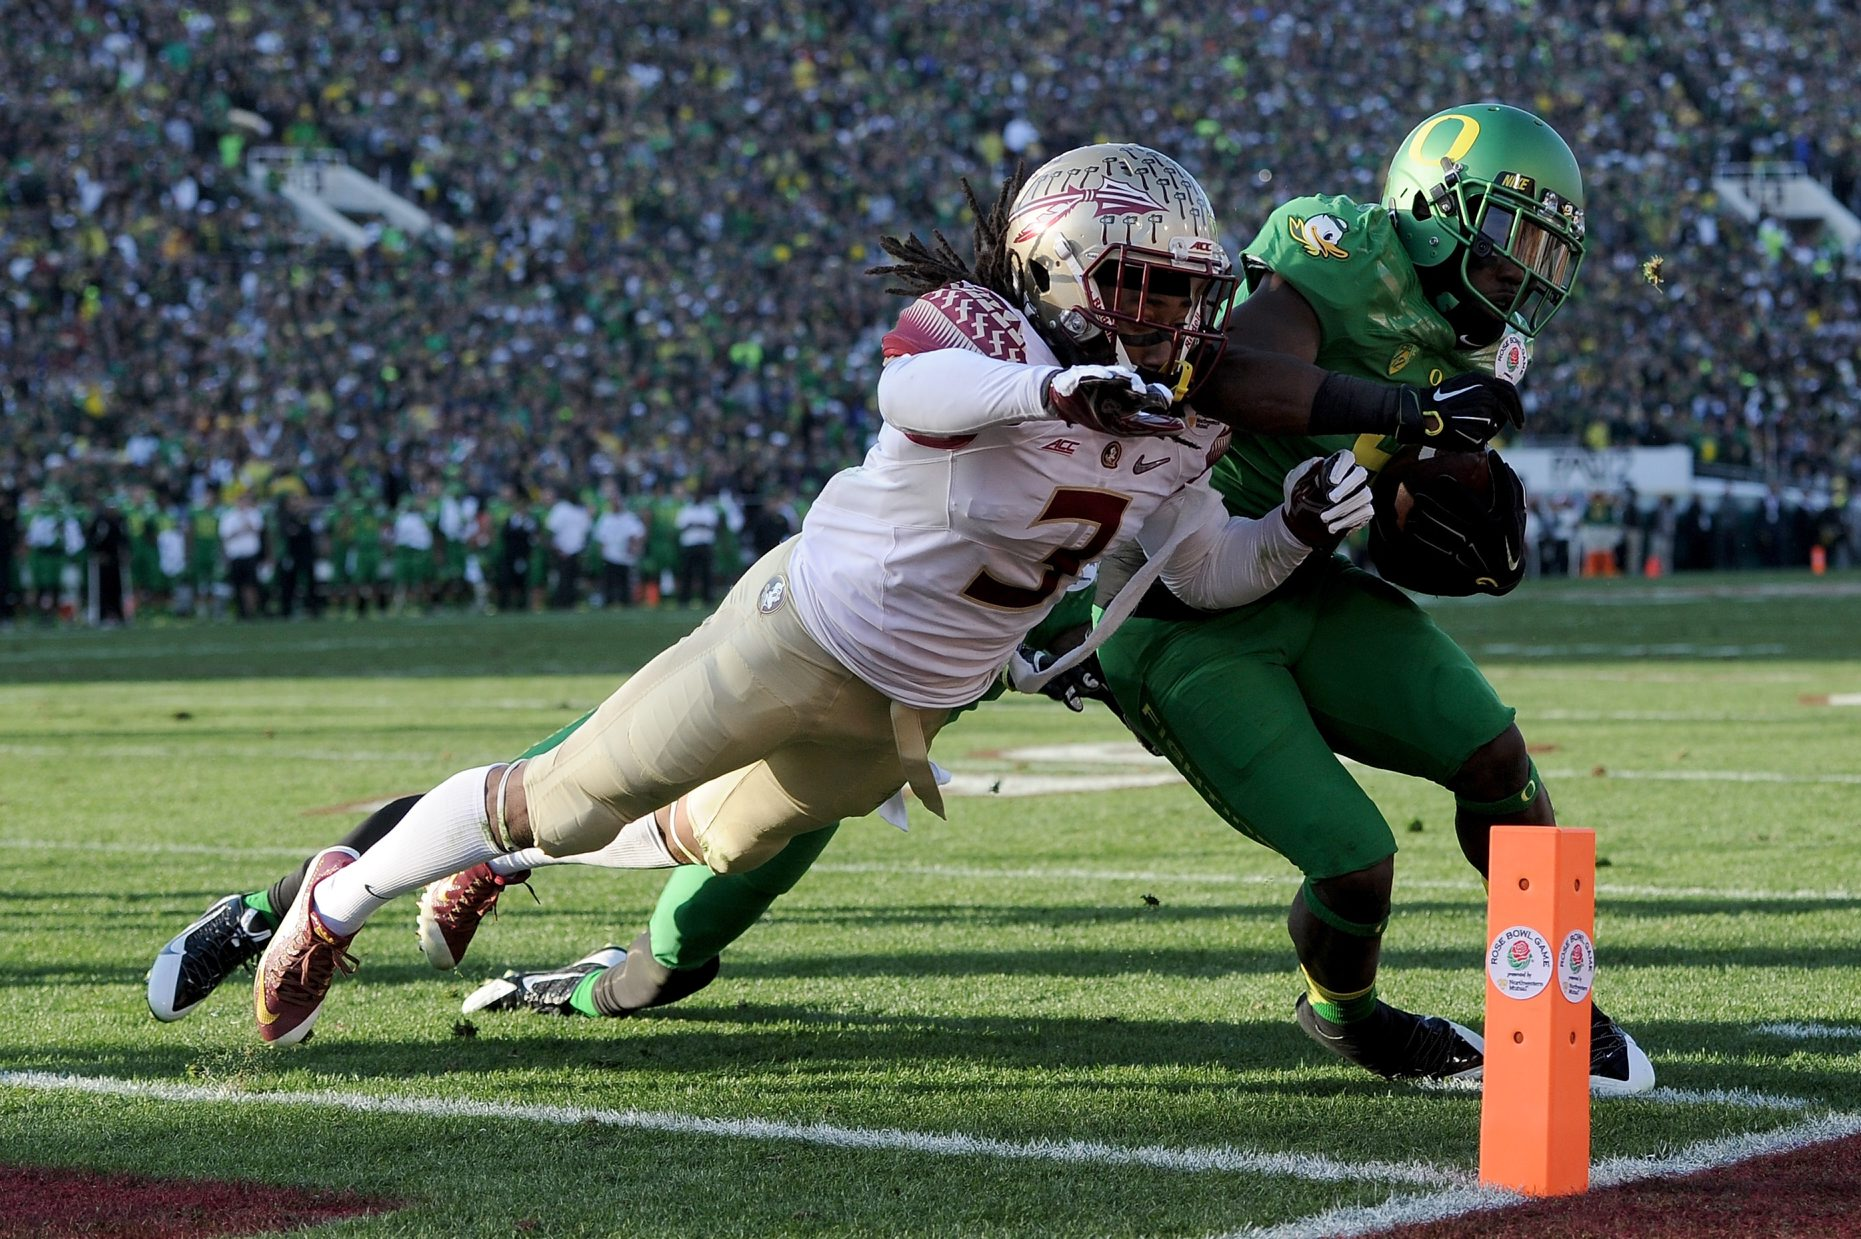 Florida State cornerback Ronald Darby, hitting Oregon's Byron Marshall, is known for aggressive play and speed on the field.